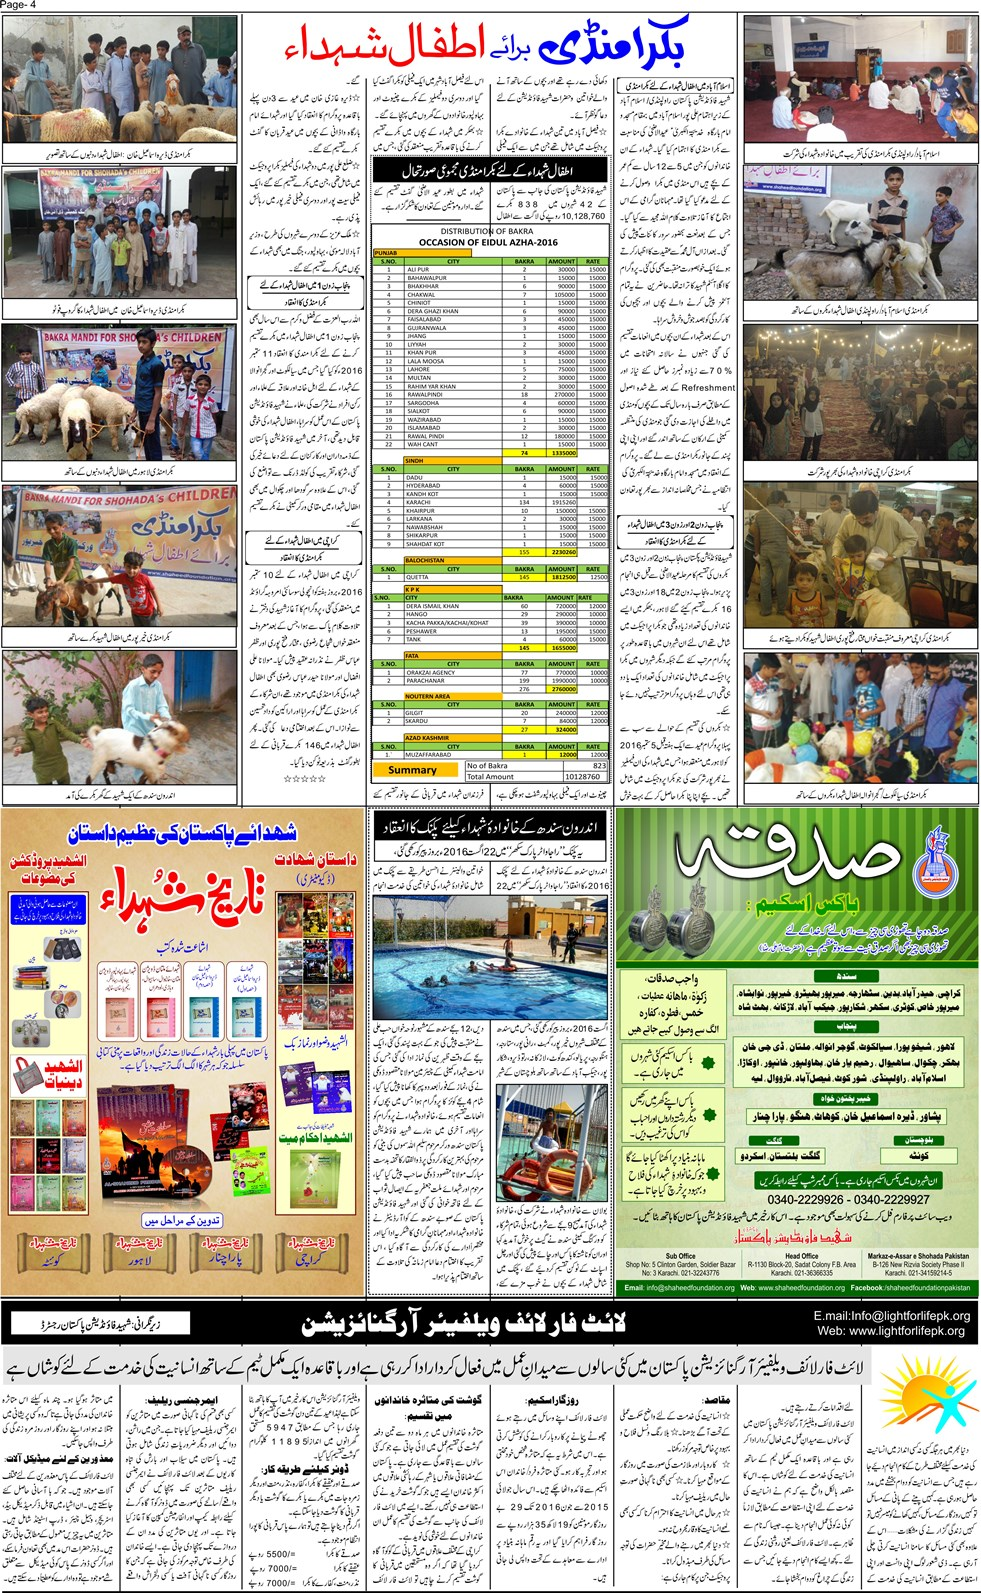 Al Shaheed News paper (Oct 2016) Issue